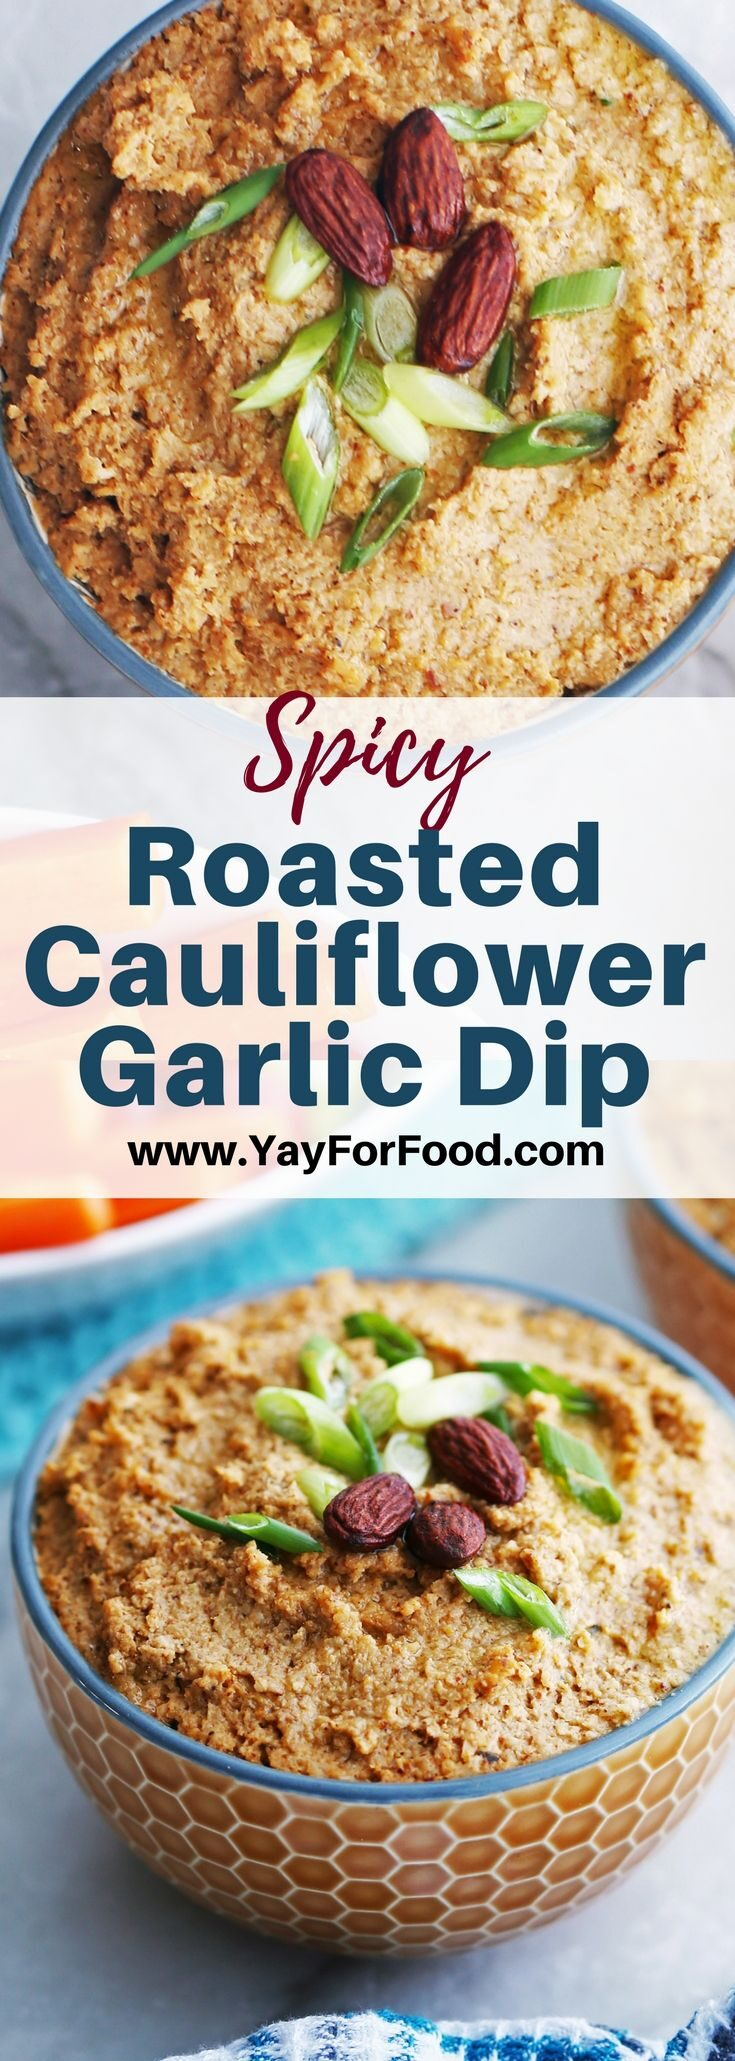 Check out this delicious and flavourful vegan dip made with roasted cauliflower, garlic, spices, and more! This easy appetizer is perfect to serve with vegetables, crackers, and pita chips!